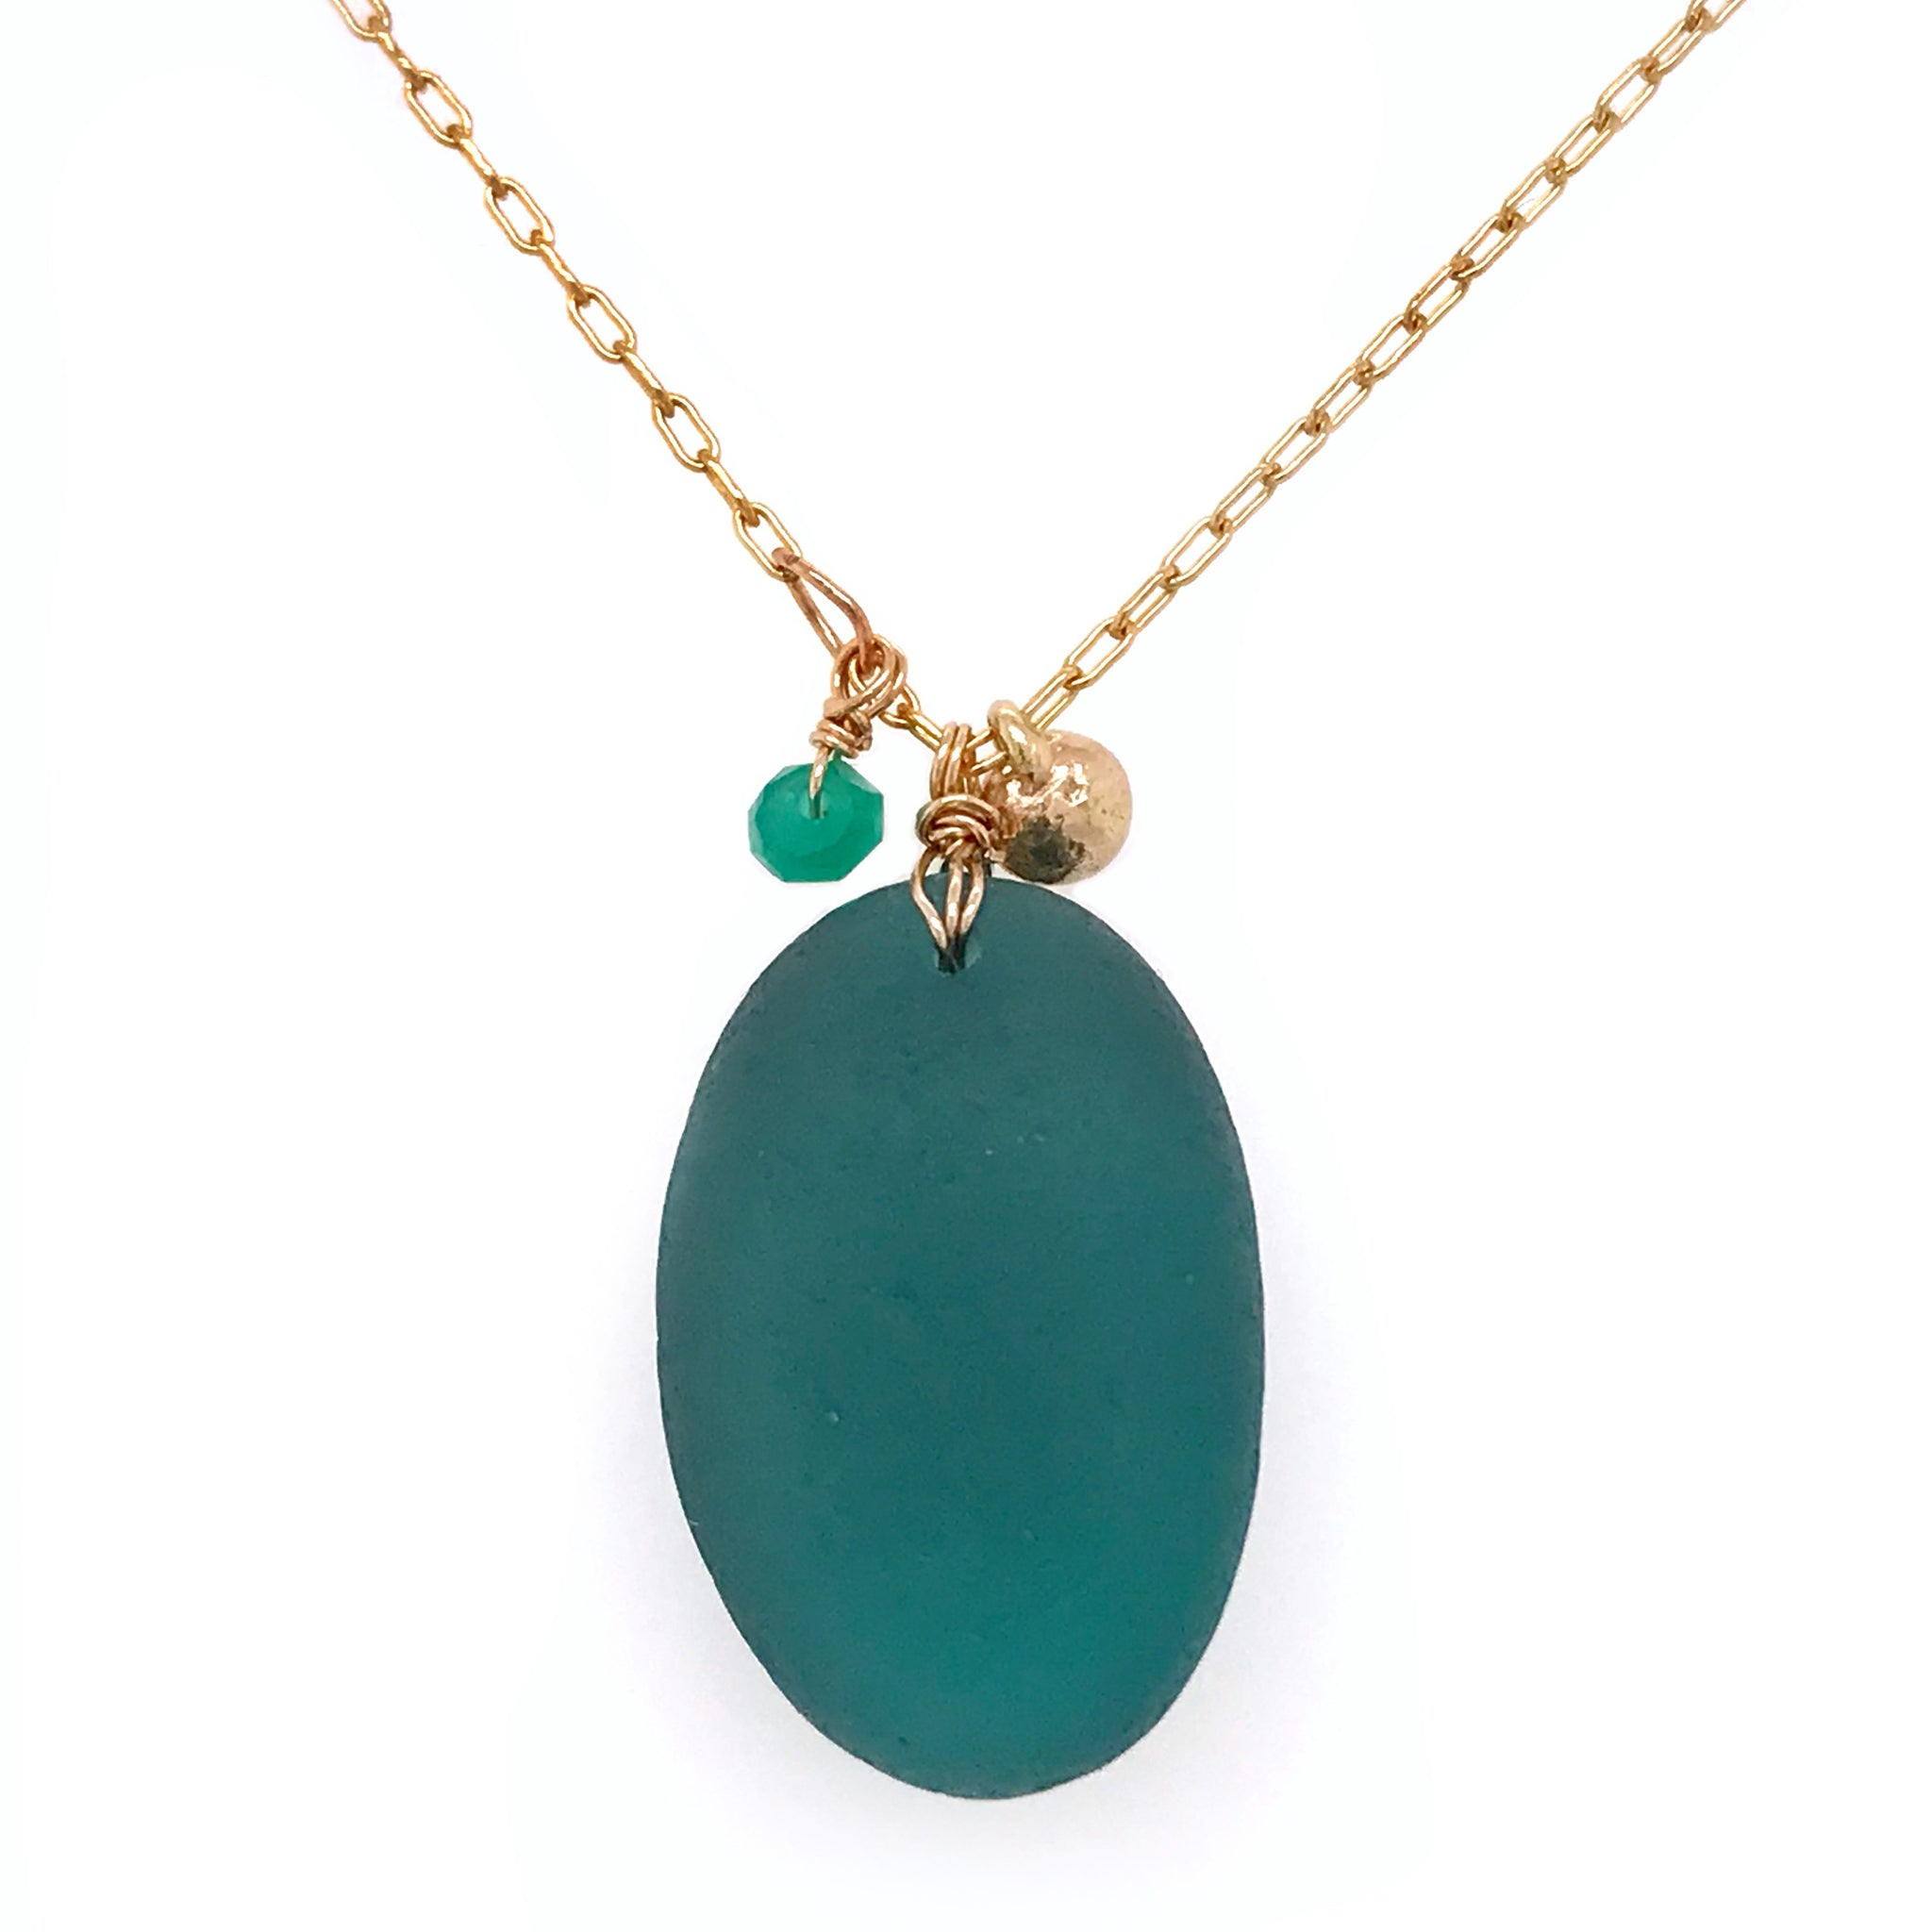 gold charm necklace made in australia seaglass jewellery